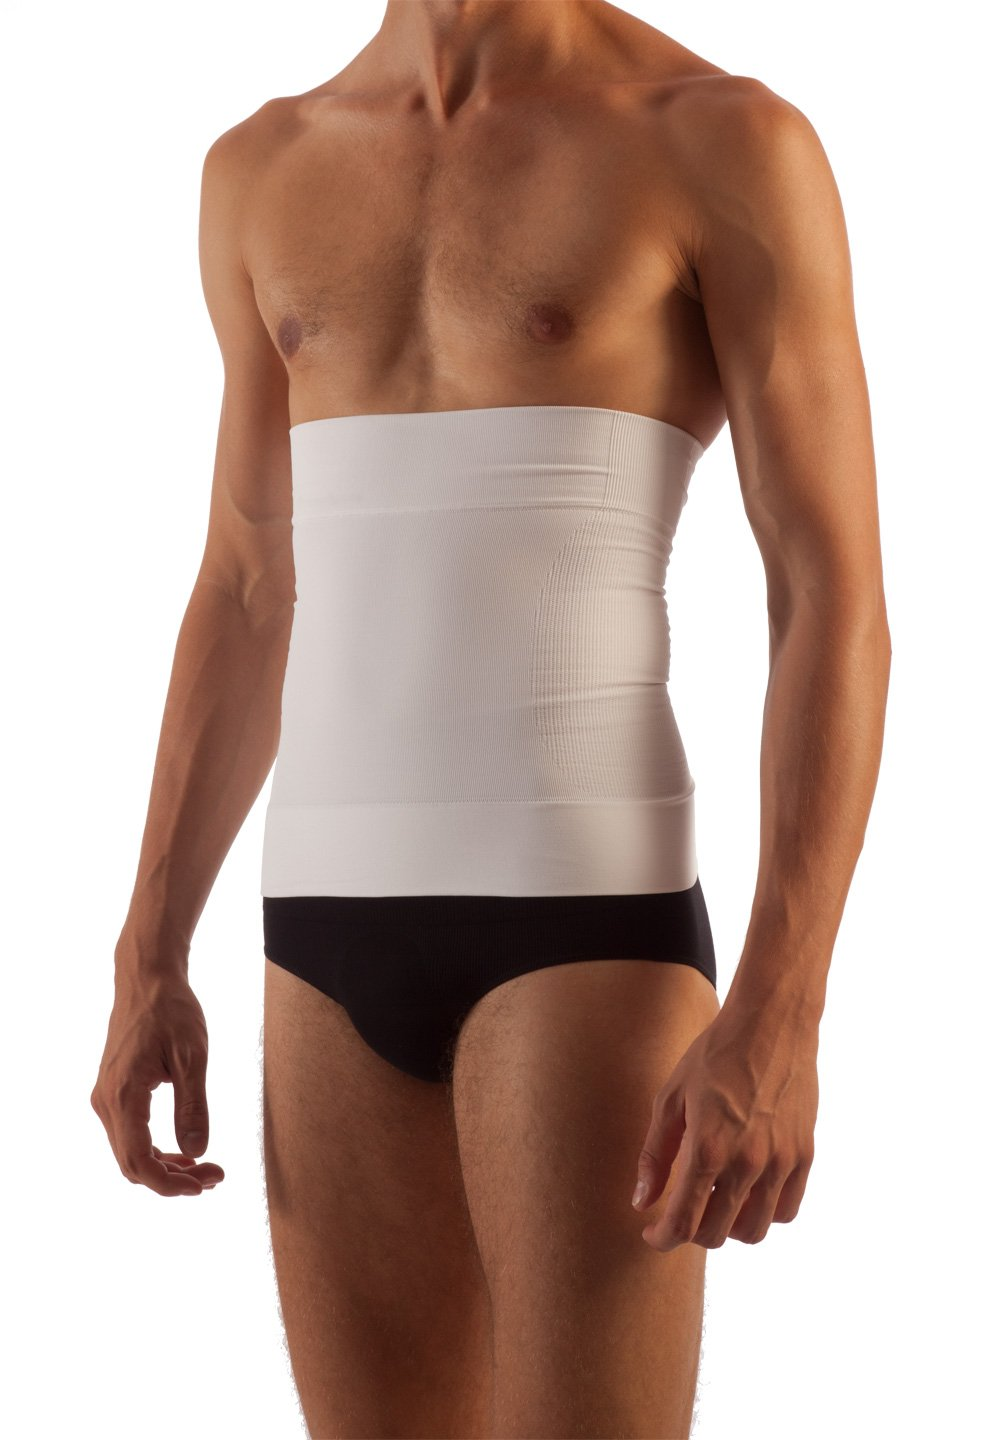 Farmacell 405 Men's Waist Control Belt Shaping Band Calze G.T. S.r.l.